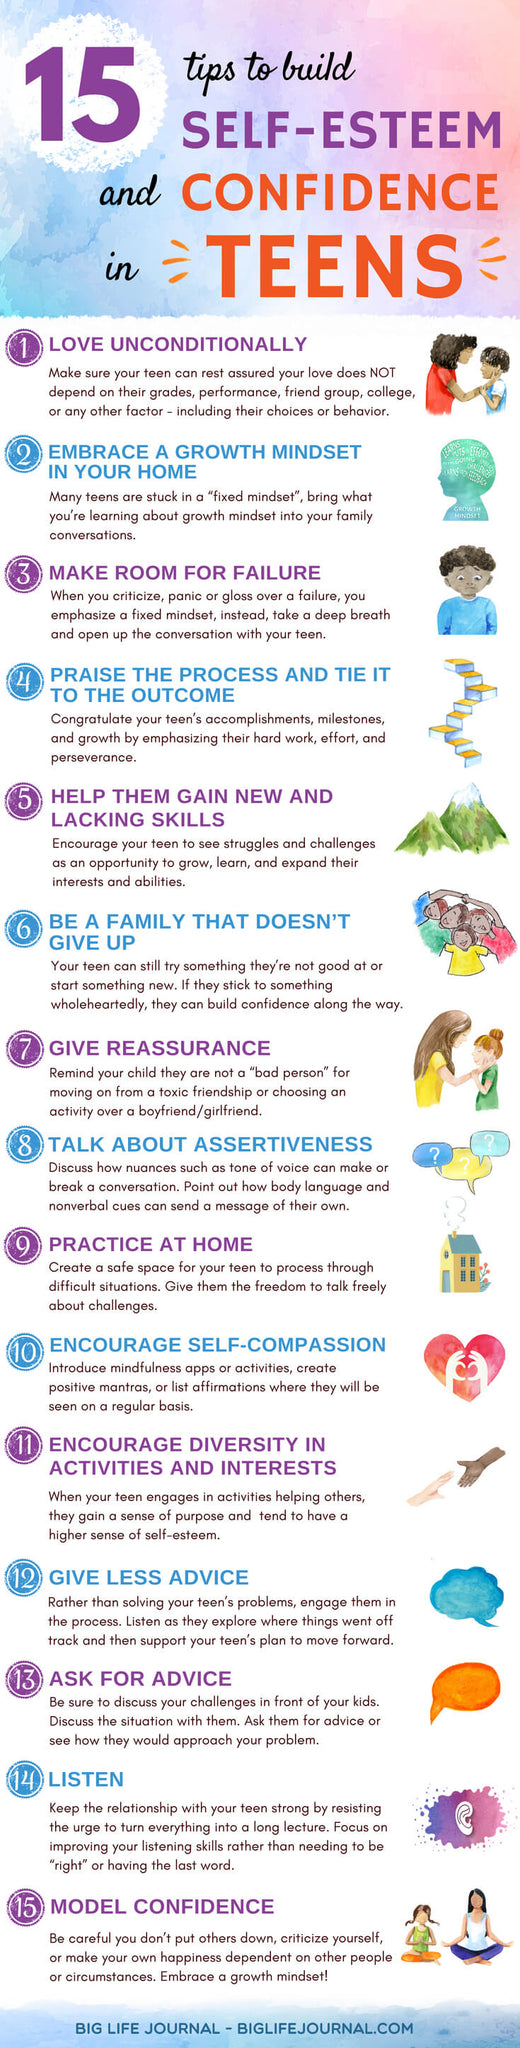 Self Esteem & Confidence Teens - big life journal